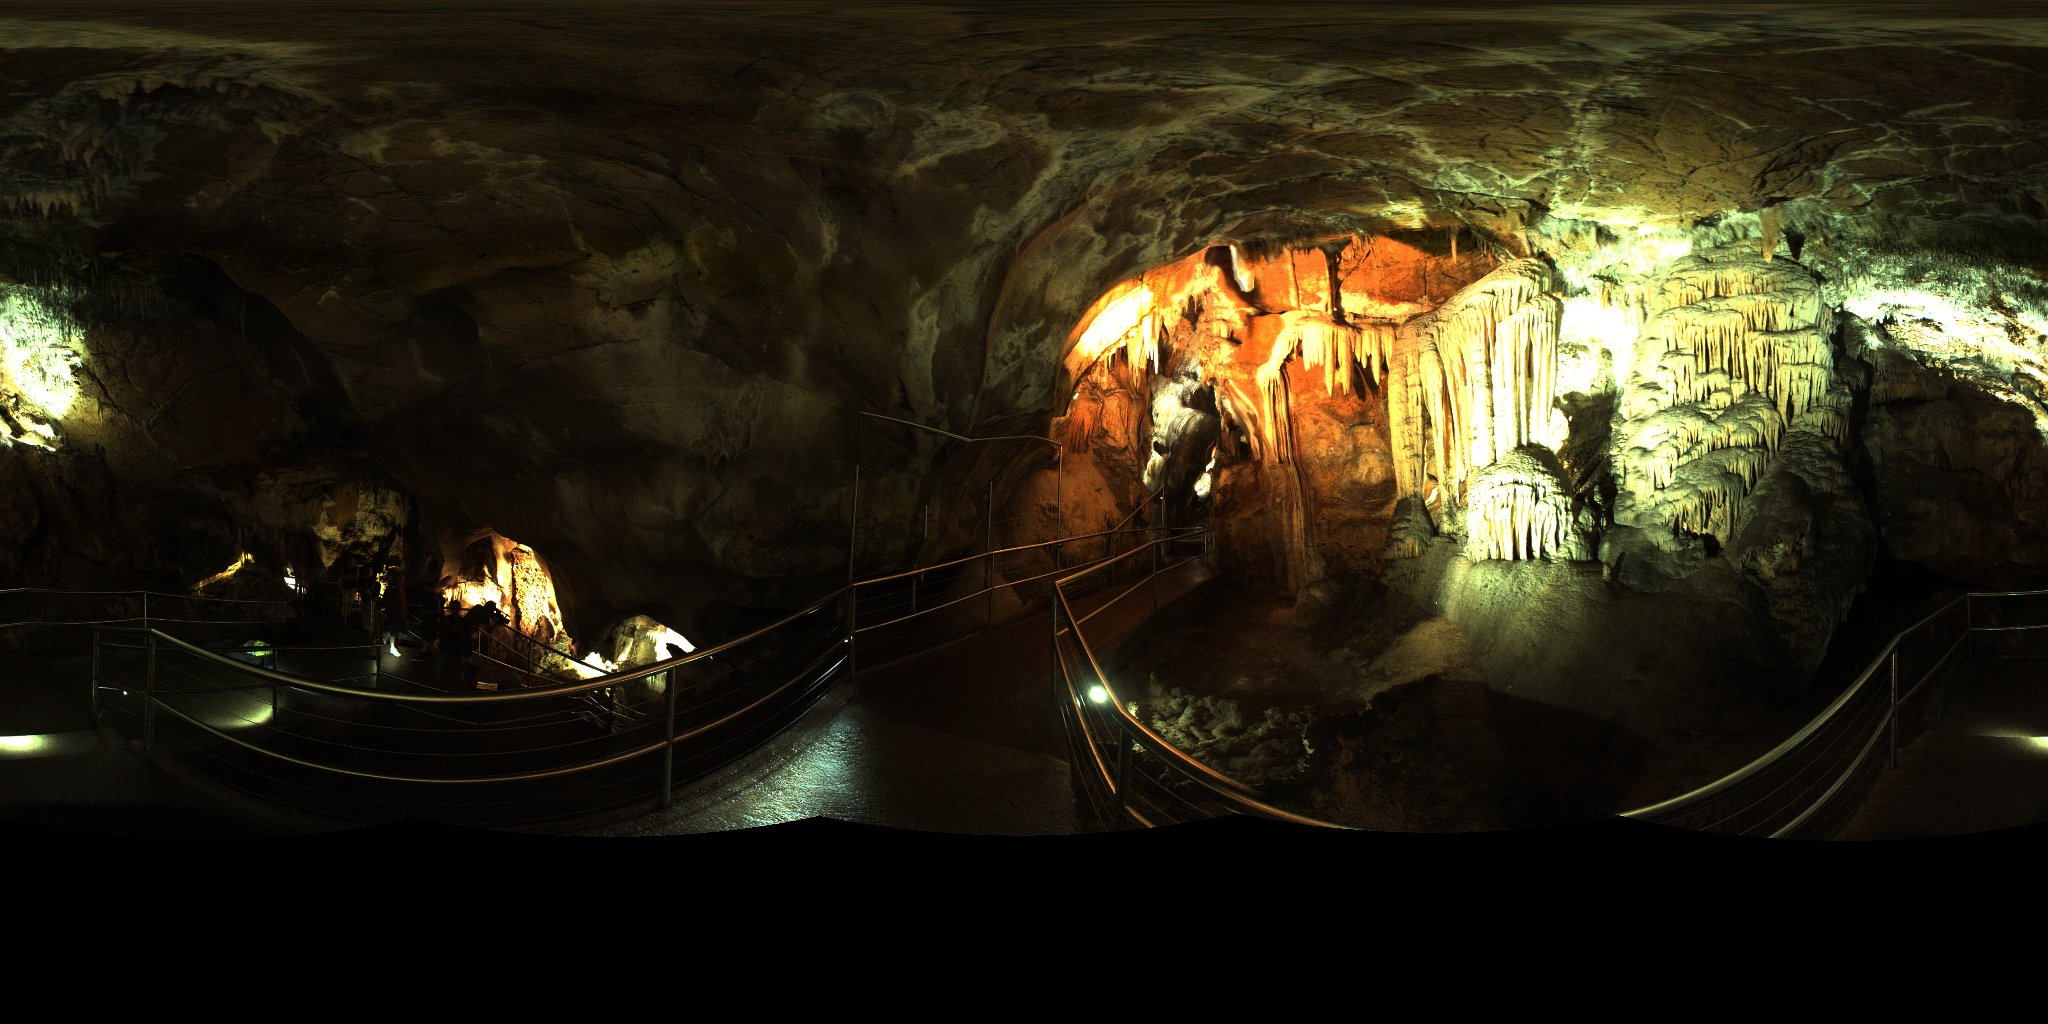 A panoramic image from within the Caves.